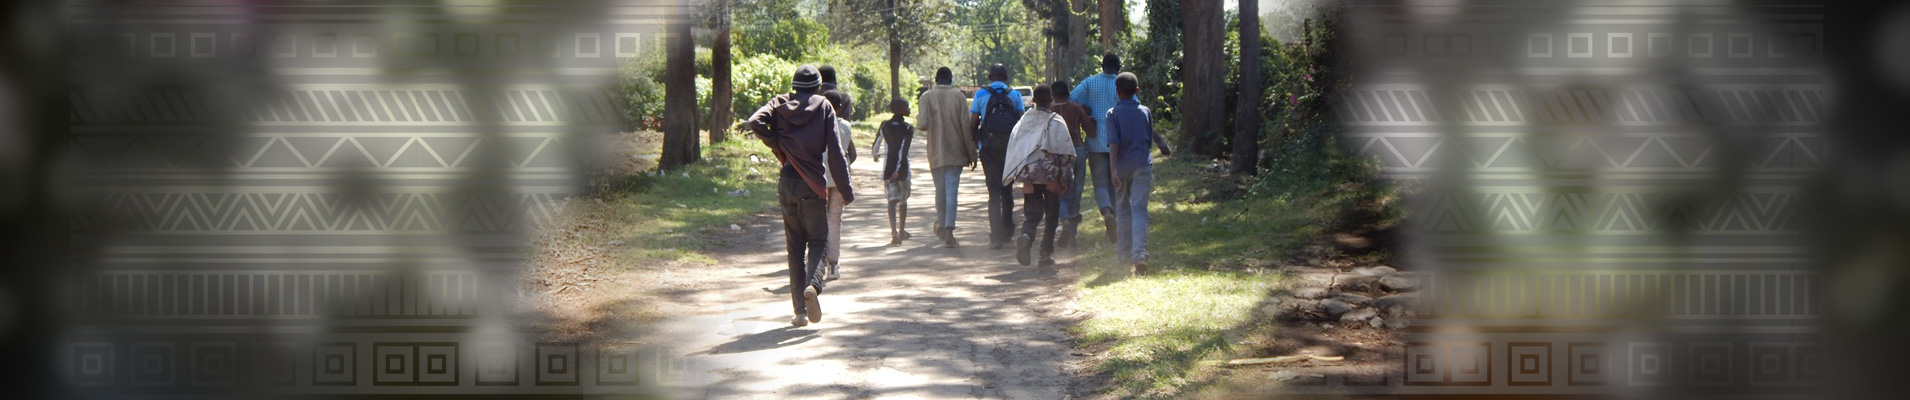 TAT helpinghomless children in Nakuru